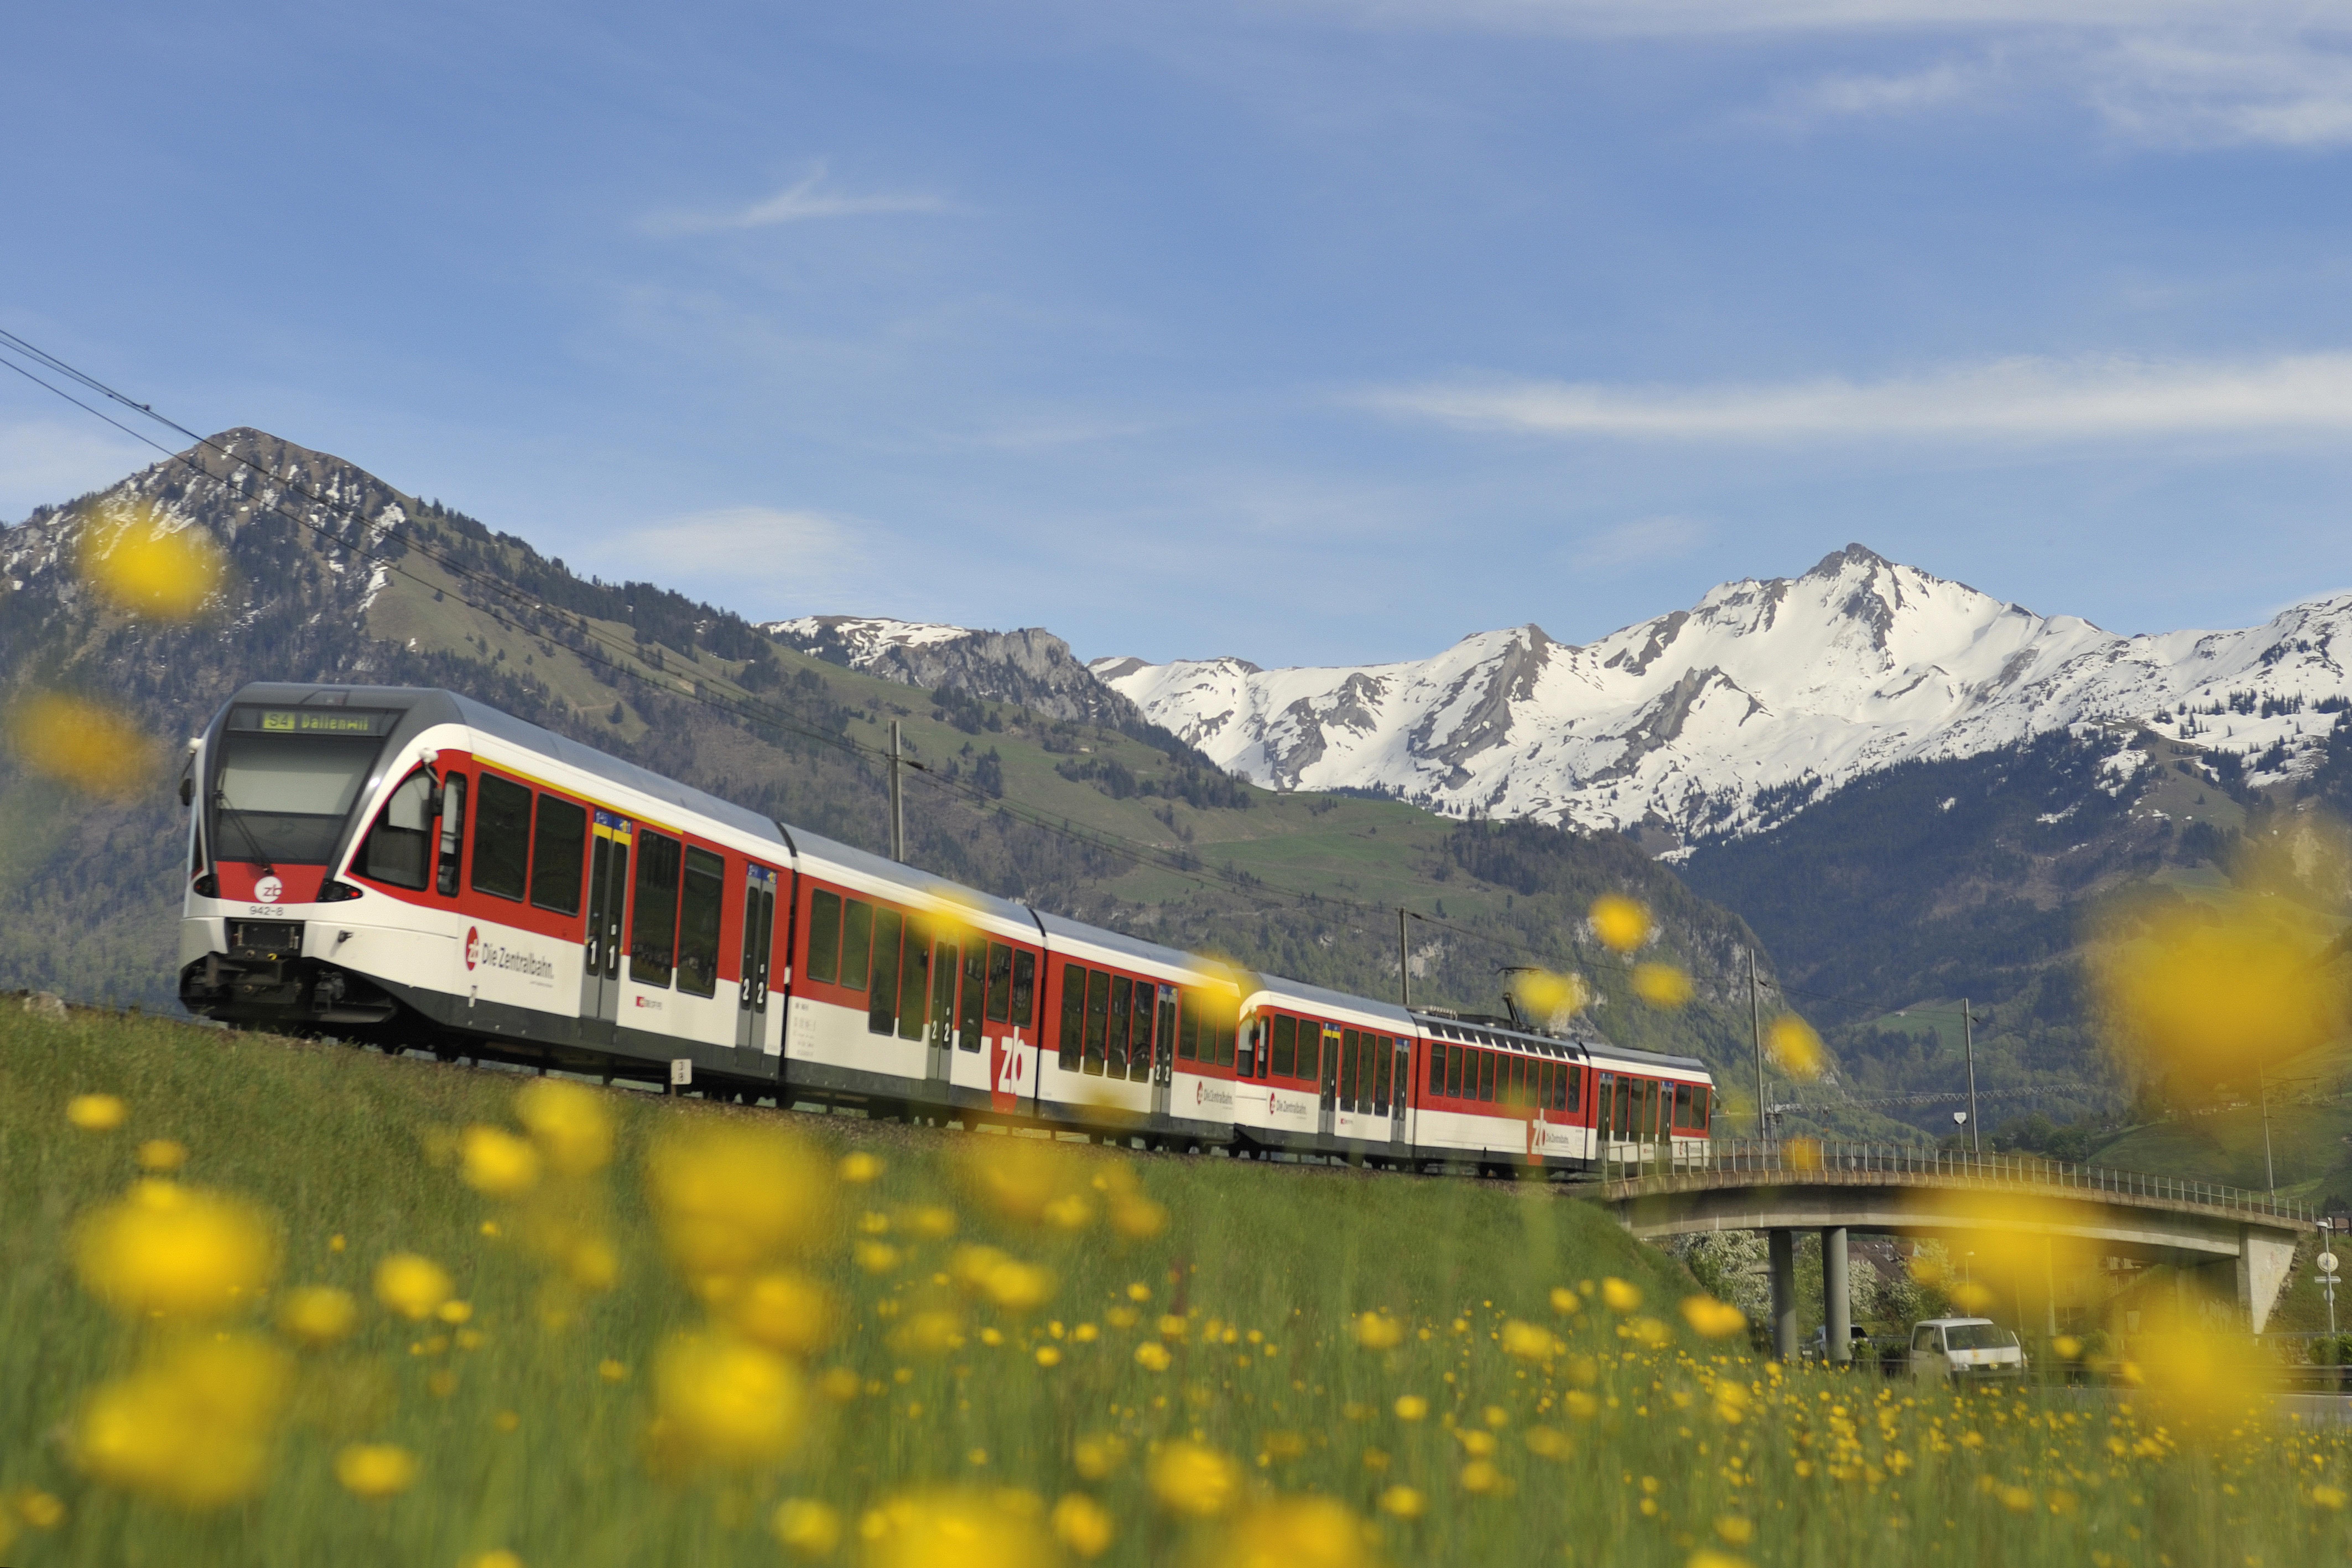 A spring view of the Luzern-Engelberg Express